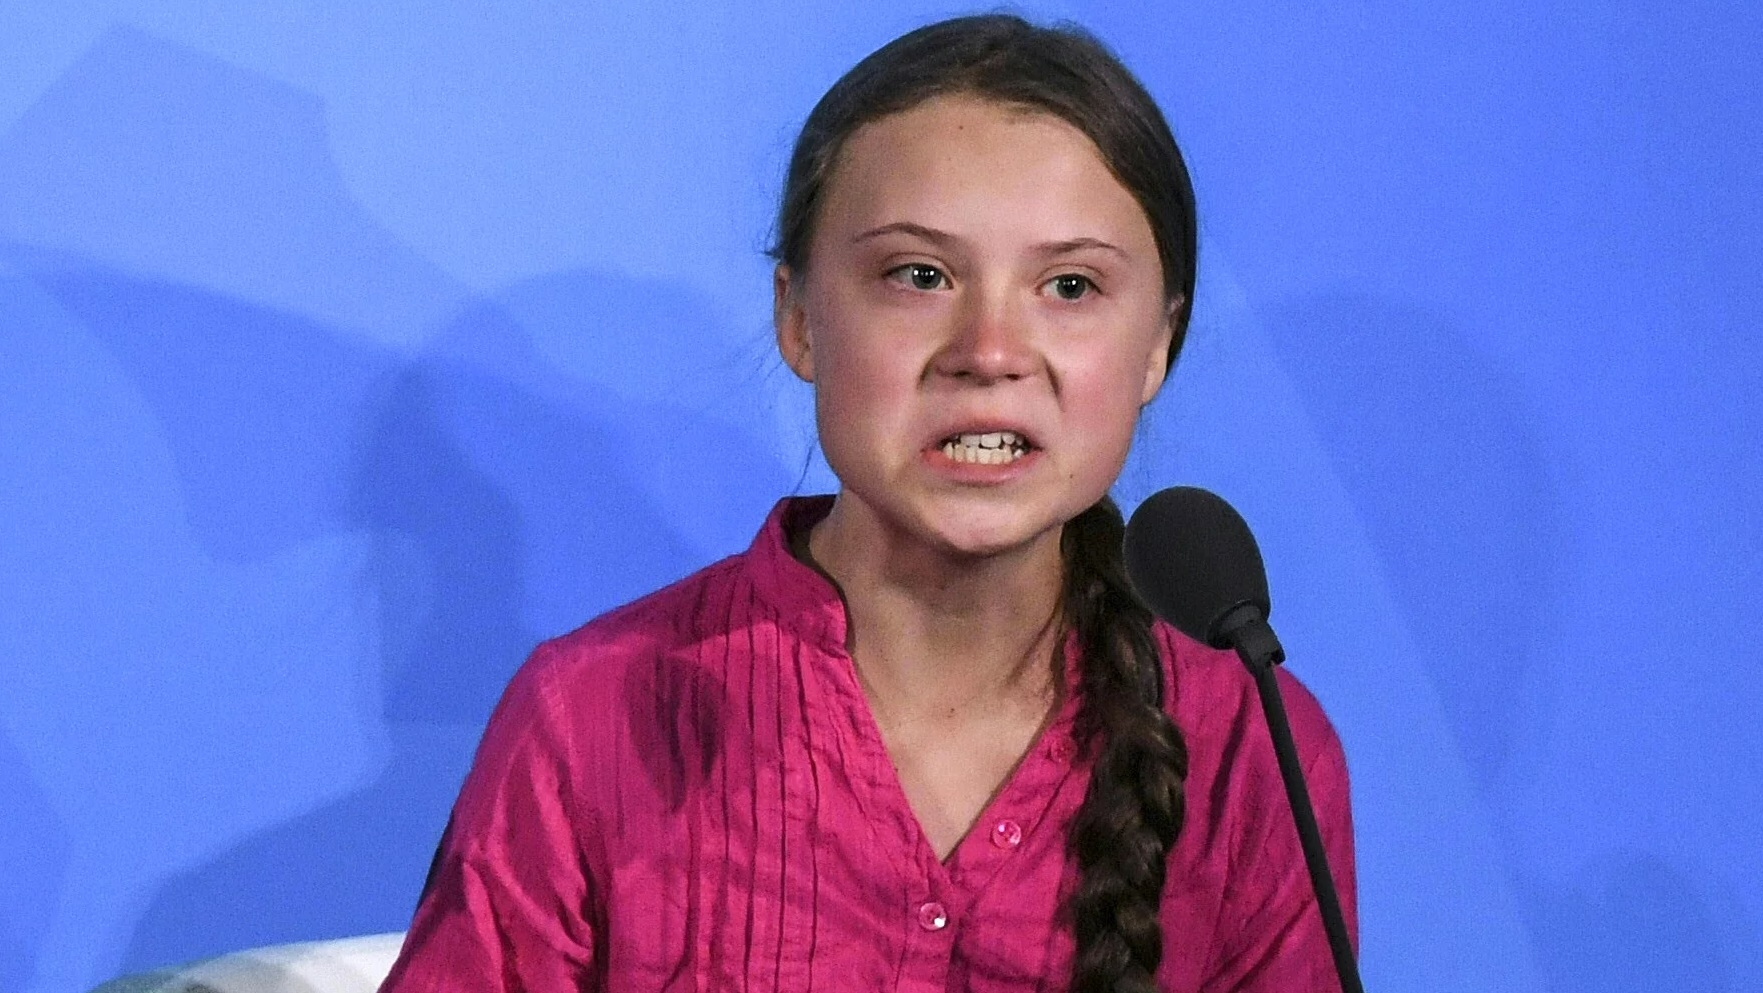 Photo of Angry Swedish Citizens report Greta Thunberg's parents to Child Services for child abuse